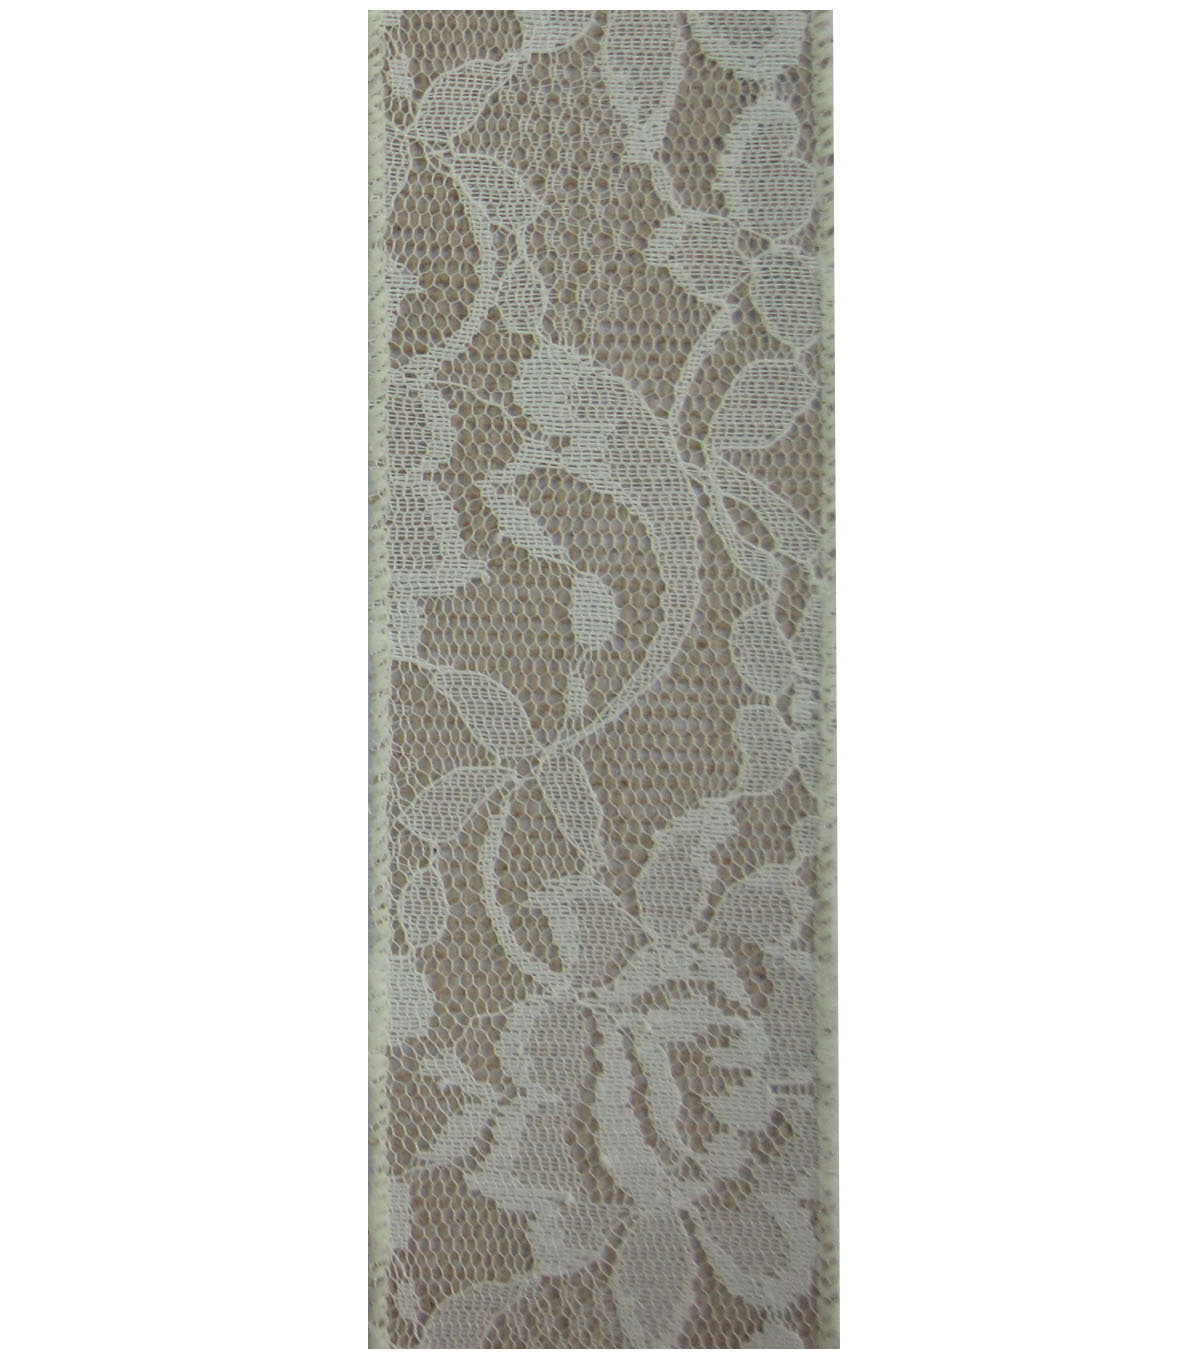 Decorative Ribbon 2.5\u0027\u0027x9\u0027 Lace with Burlap-Ivory